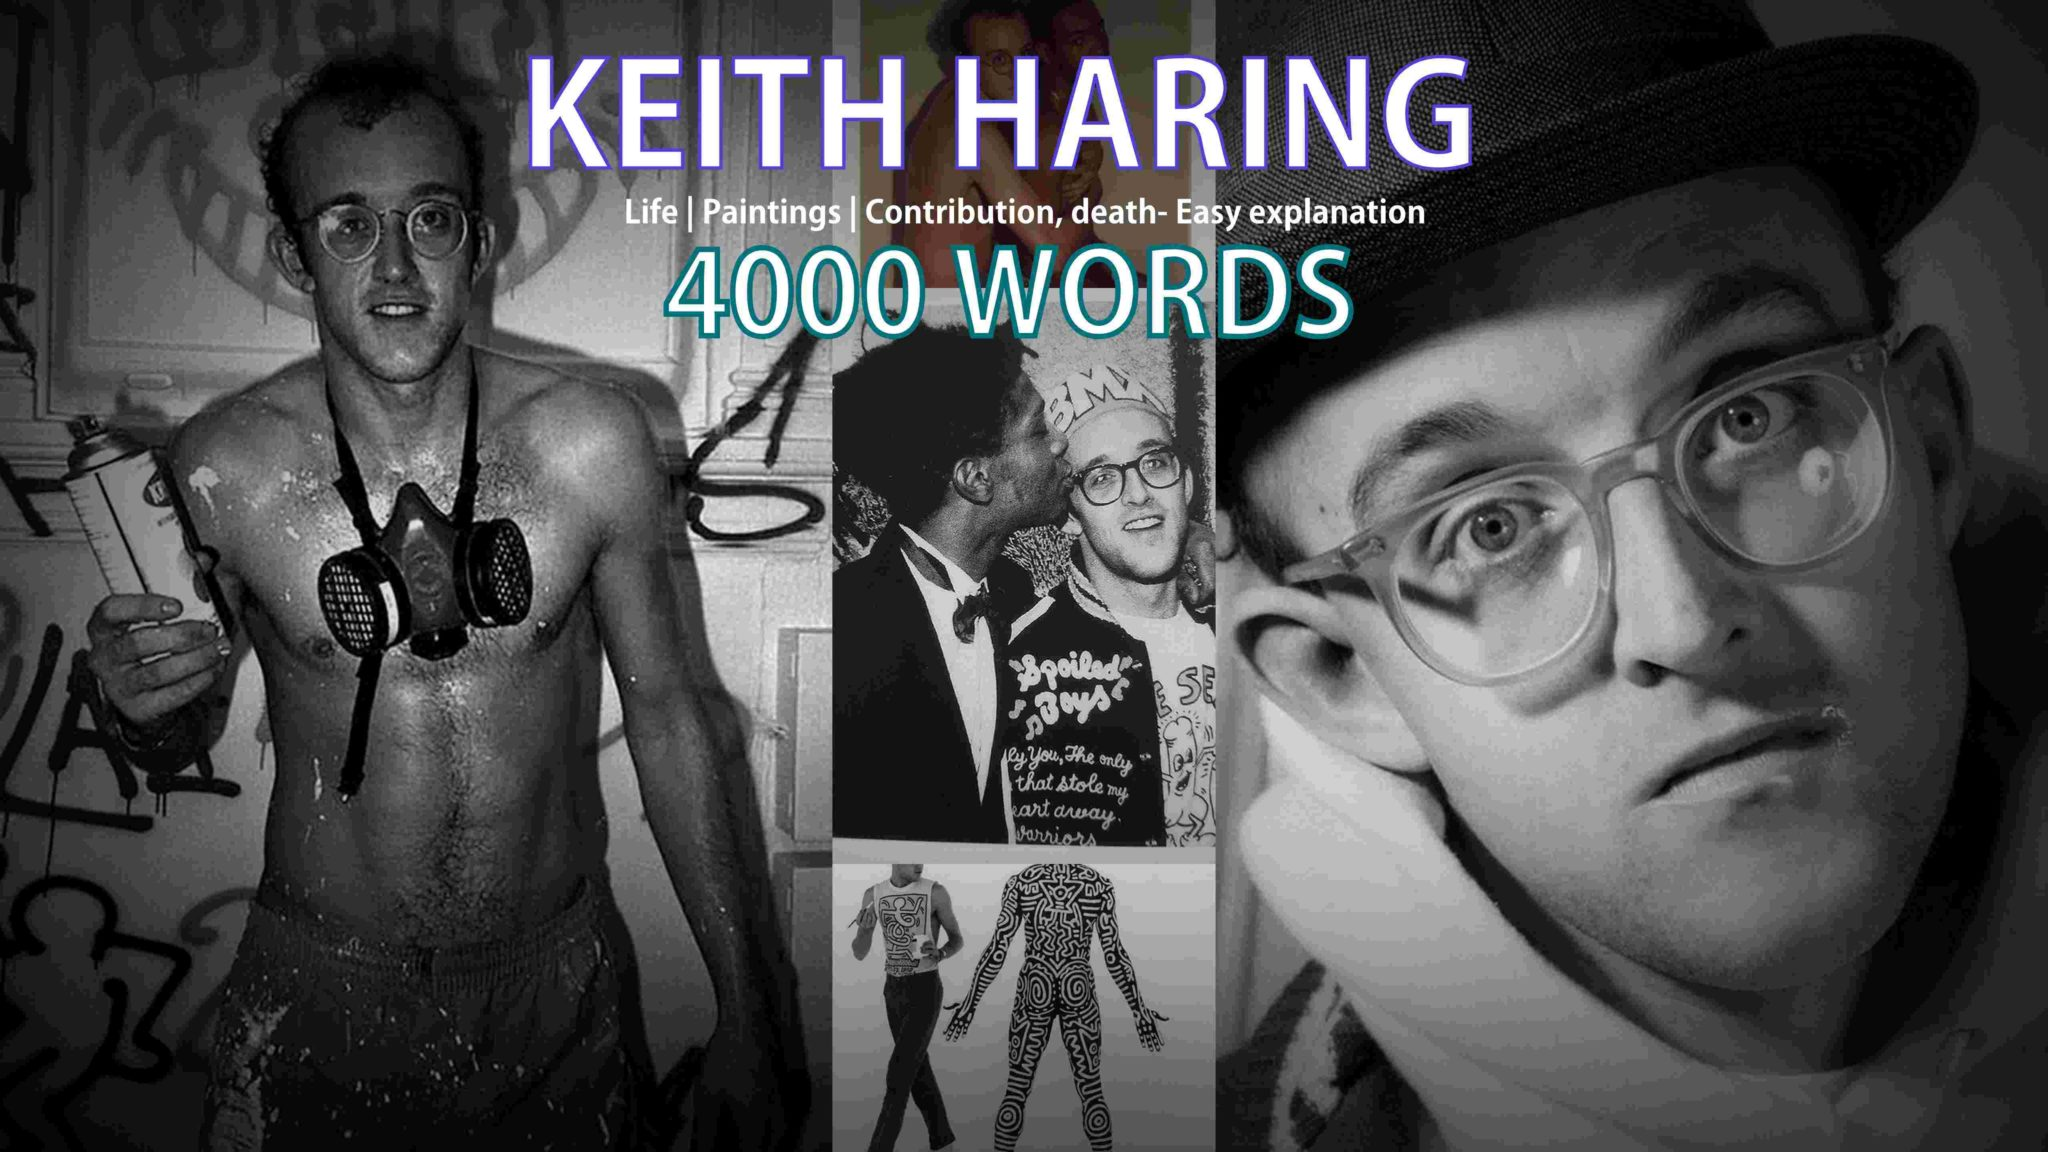 Keith Haring- Life, paintings, contribution, death- Easy explanation